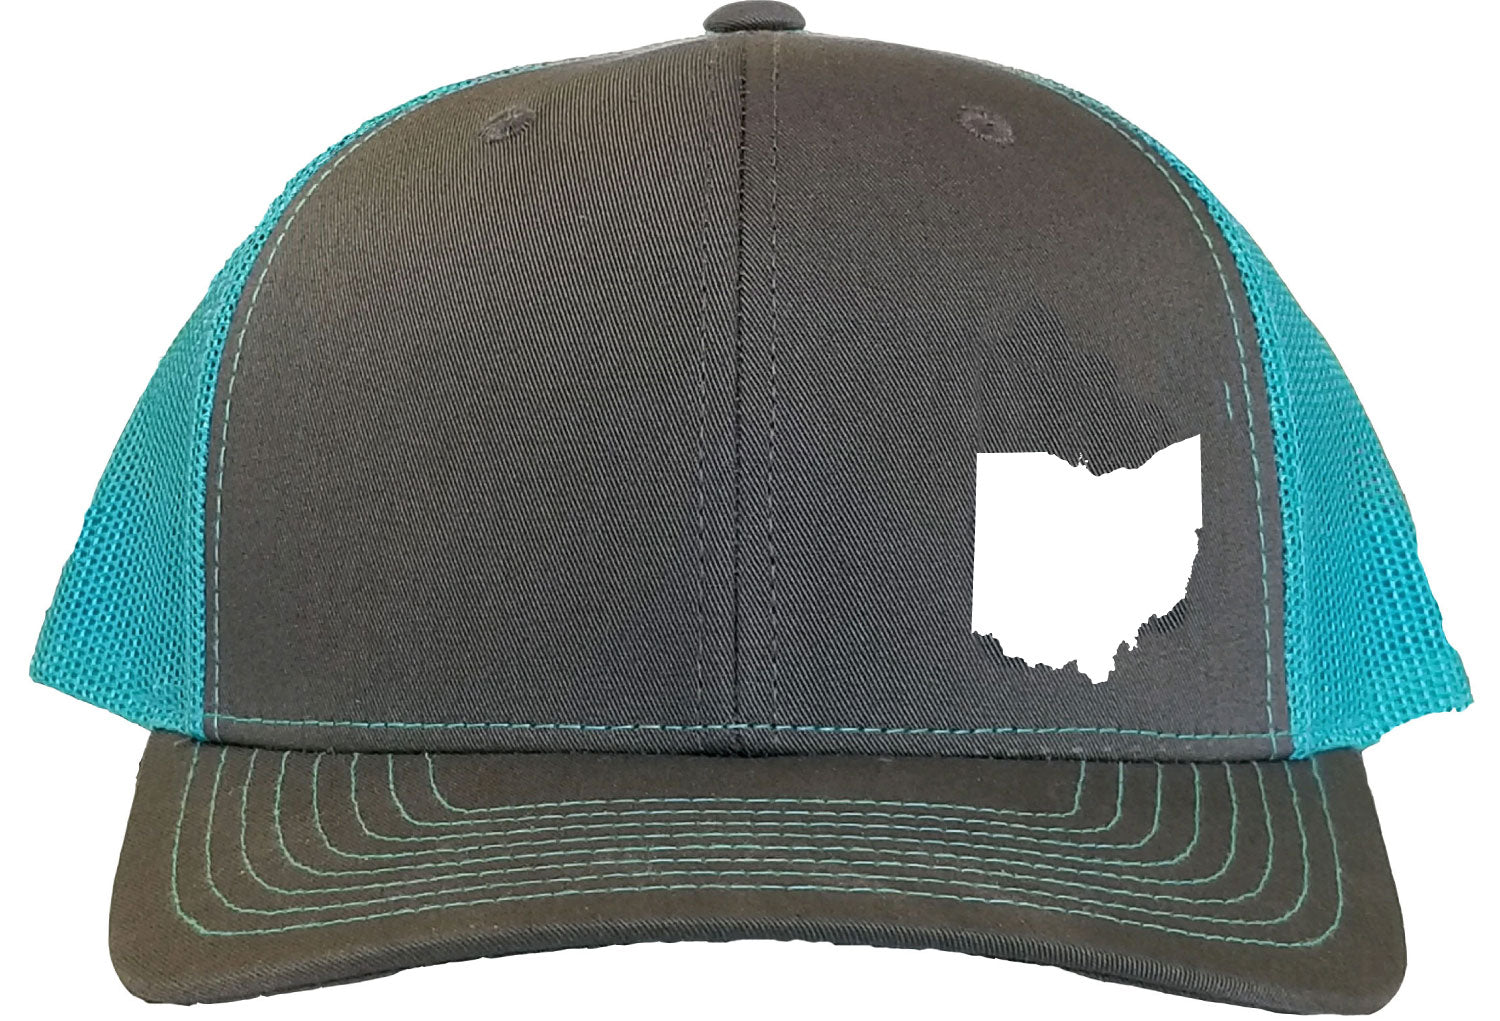 Ohio Snapback Hat - Grey/Aqua